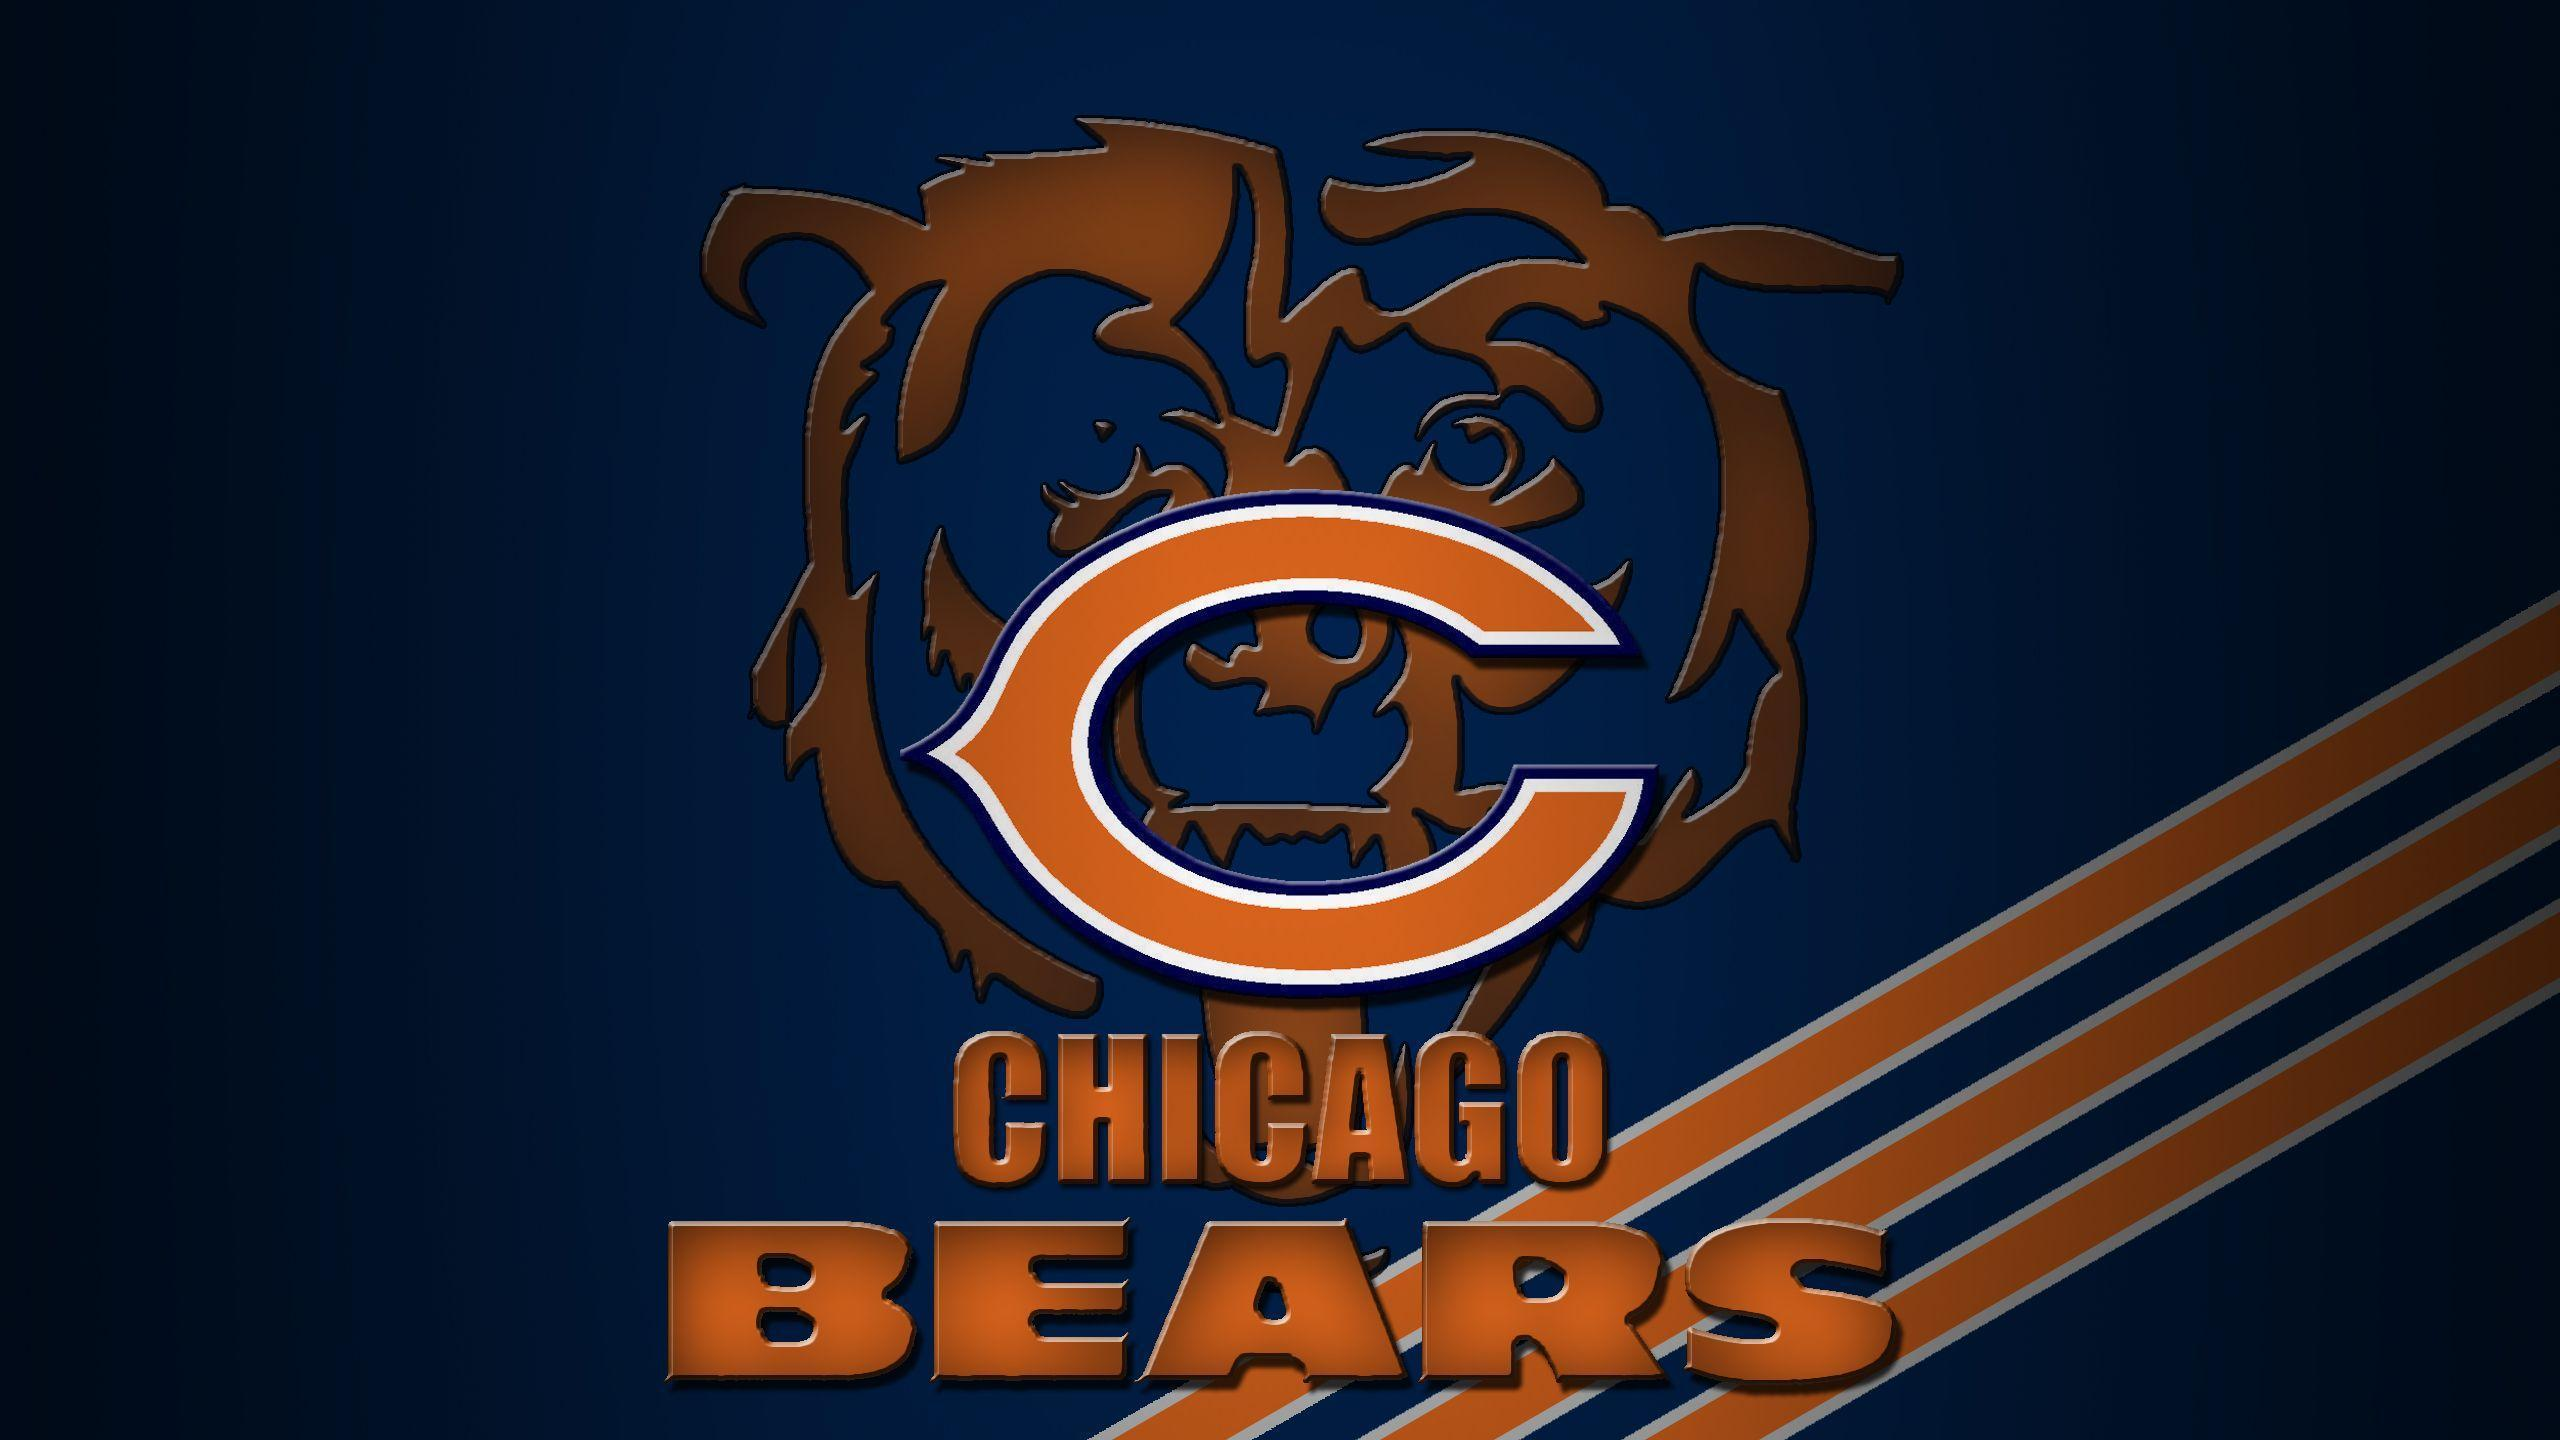 Chicago Bears Wallpapers 2016 2560x1440